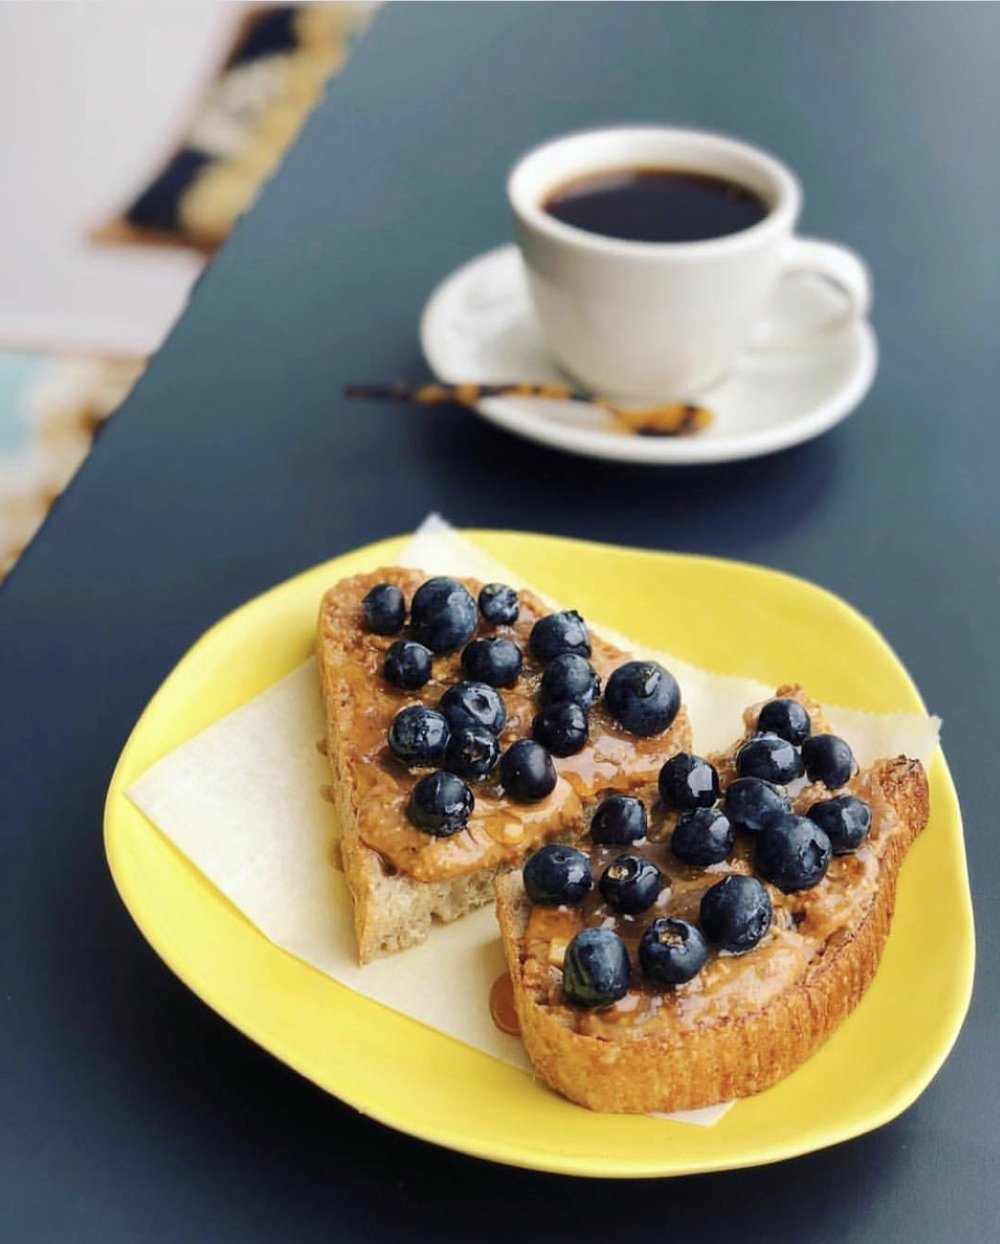 Midnight Cowboy     @bakerskneaded    Pain au Levain bread is delicately slathered with peanut pecan nut butter by    @bigspoonroasters   ,    @brinsjam    banana jam, drizzled Coffee Blossom Honey and topped with organic blueberries, yes please!   Recipe:  @hifiespresso   Photo:  @jeffprugh